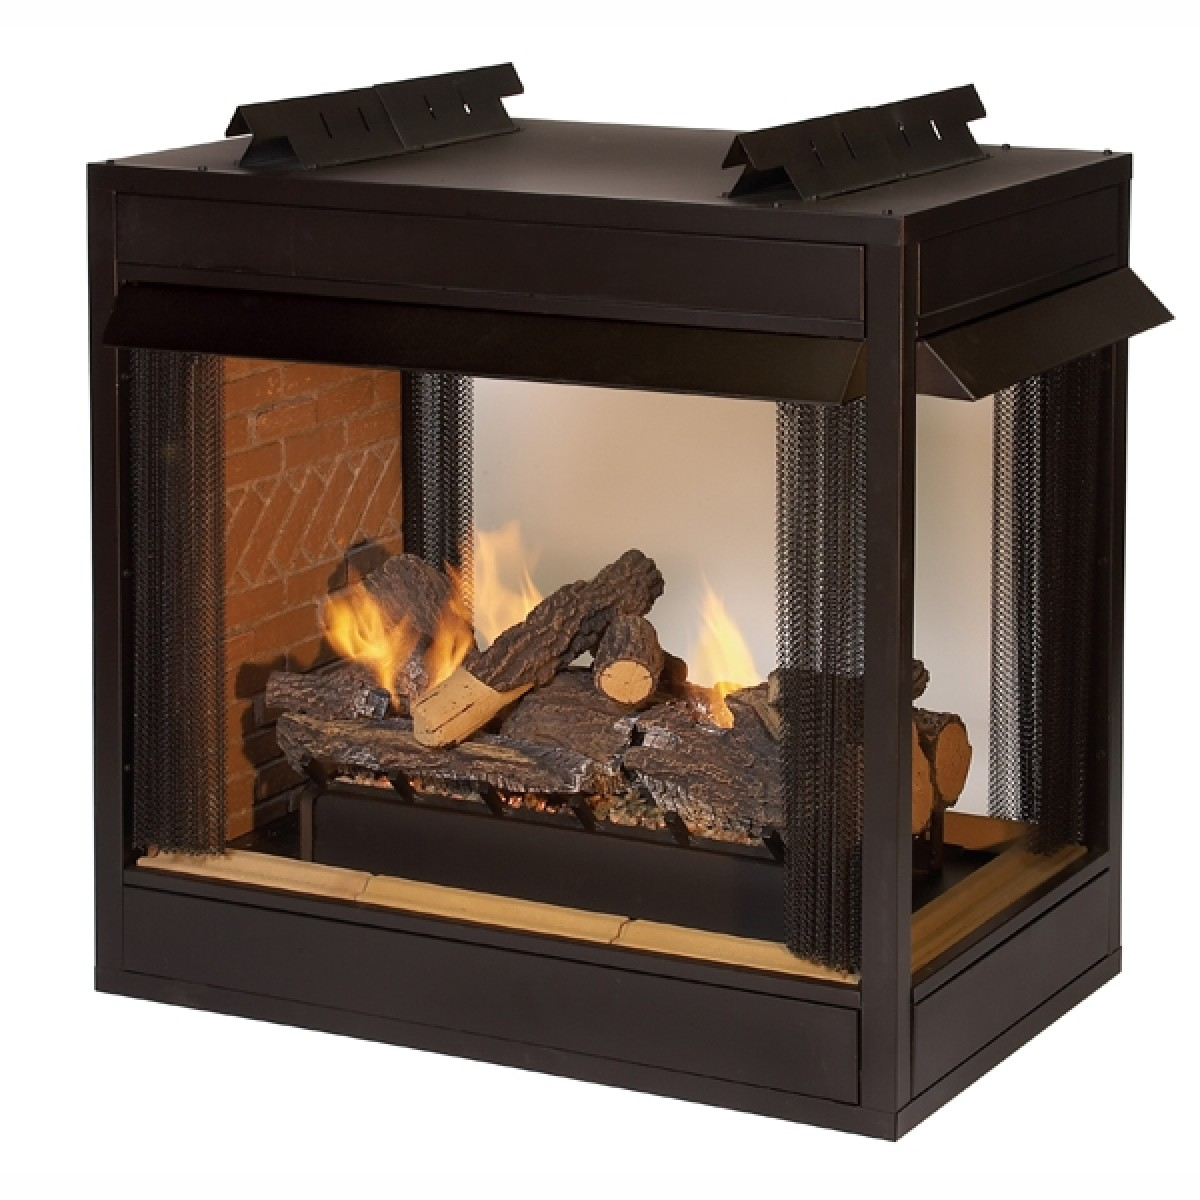 Empire Vfp36pb2el Premium Vf 36 Quot Peninsula Firebox